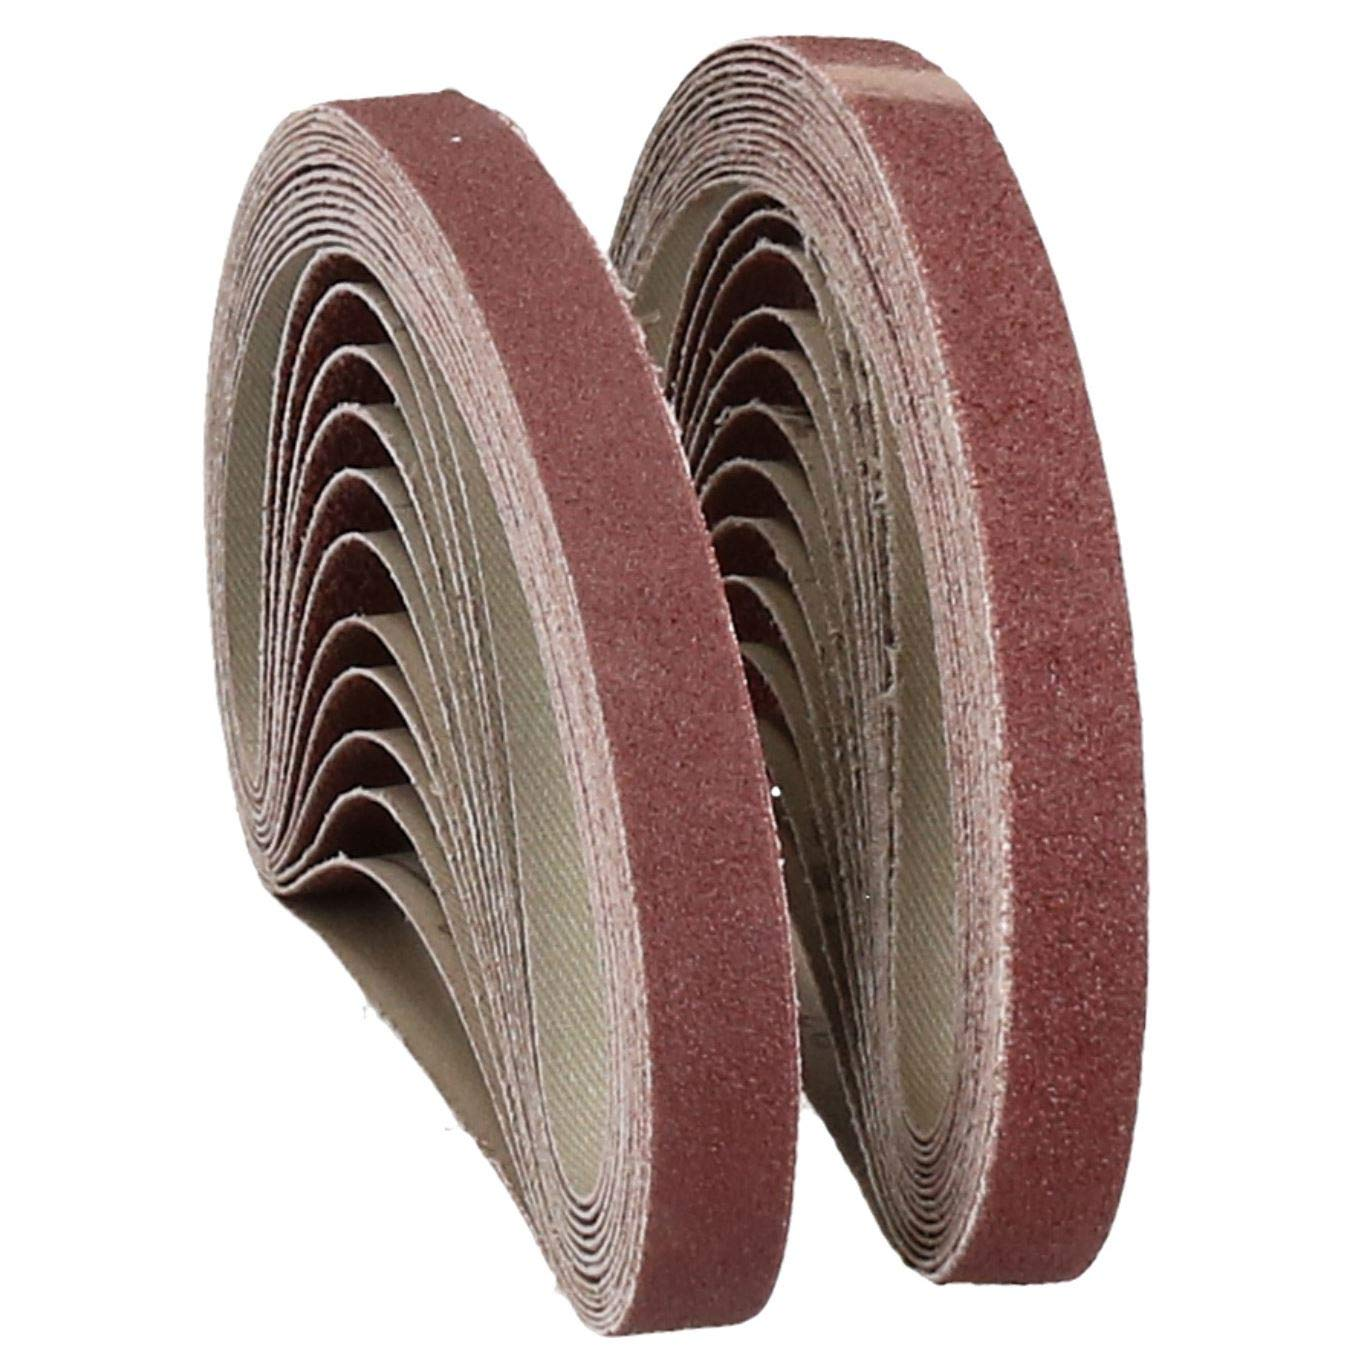 457mm x 13mm Mixed Grit Abrasive Sanding Belts Power File Sander Belt 25 Pack